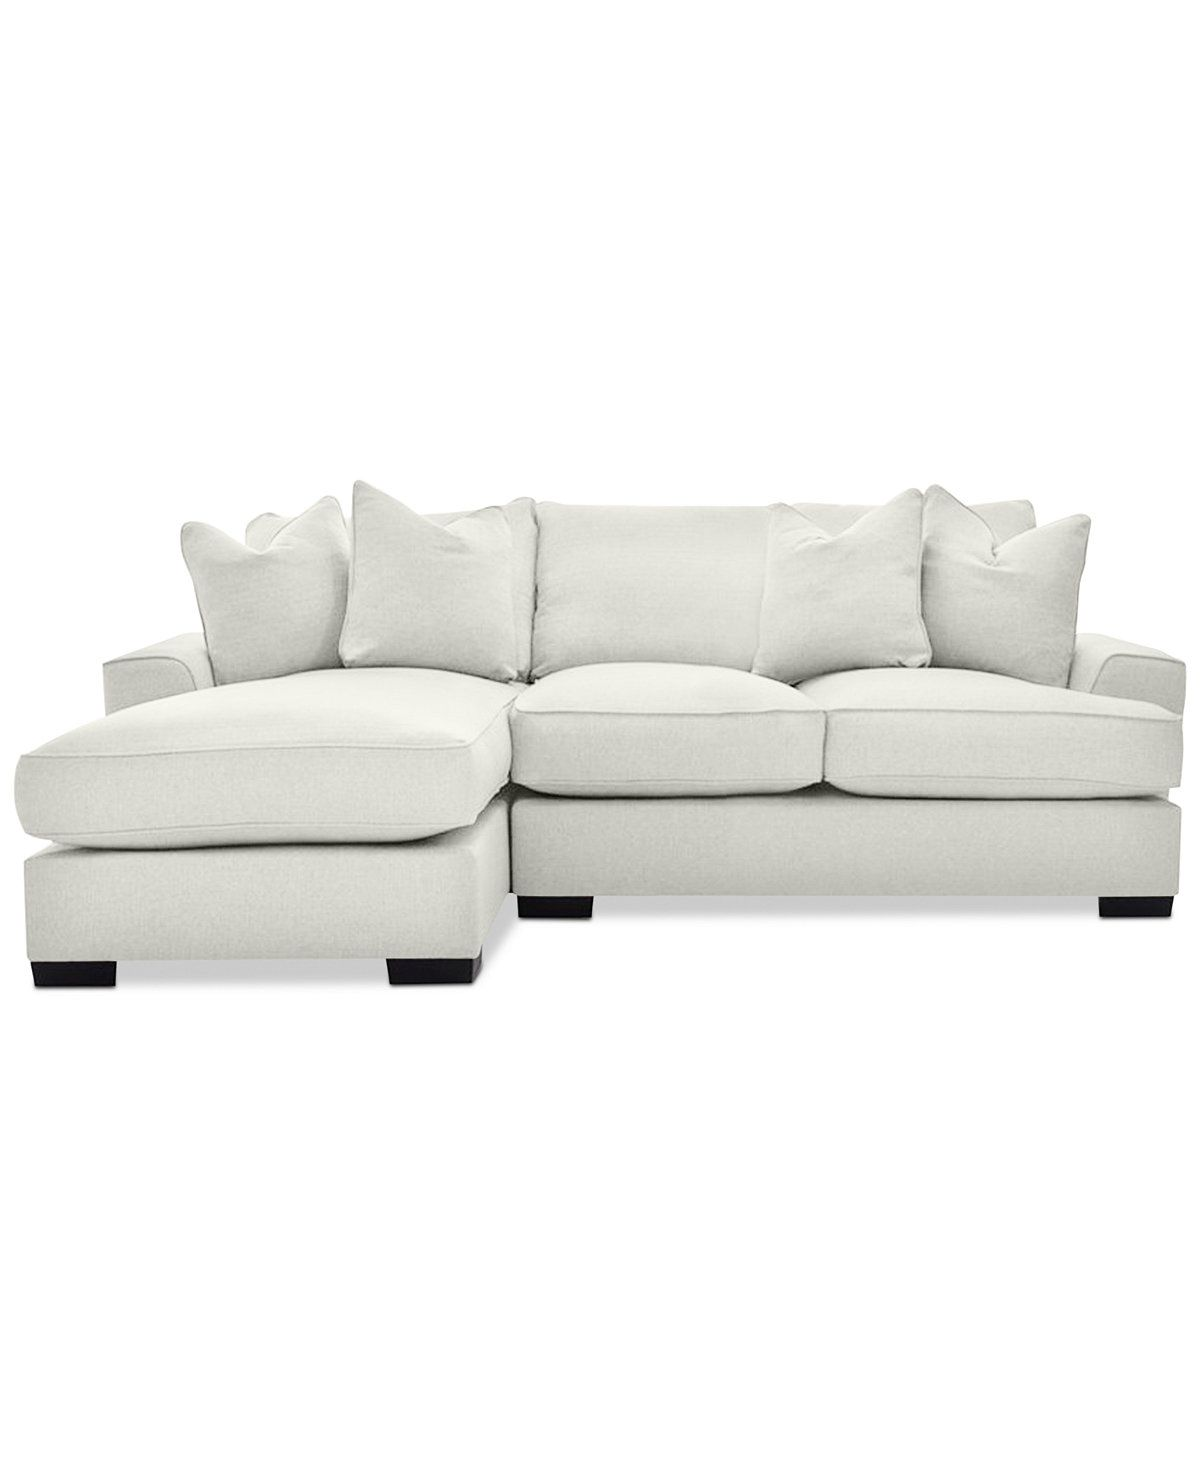 Peachy Ainsley 2 Piece Fabric Chaise Sectional With 4 Toss Pillows Pabps2019 Chair Design Images Pabps2019Com